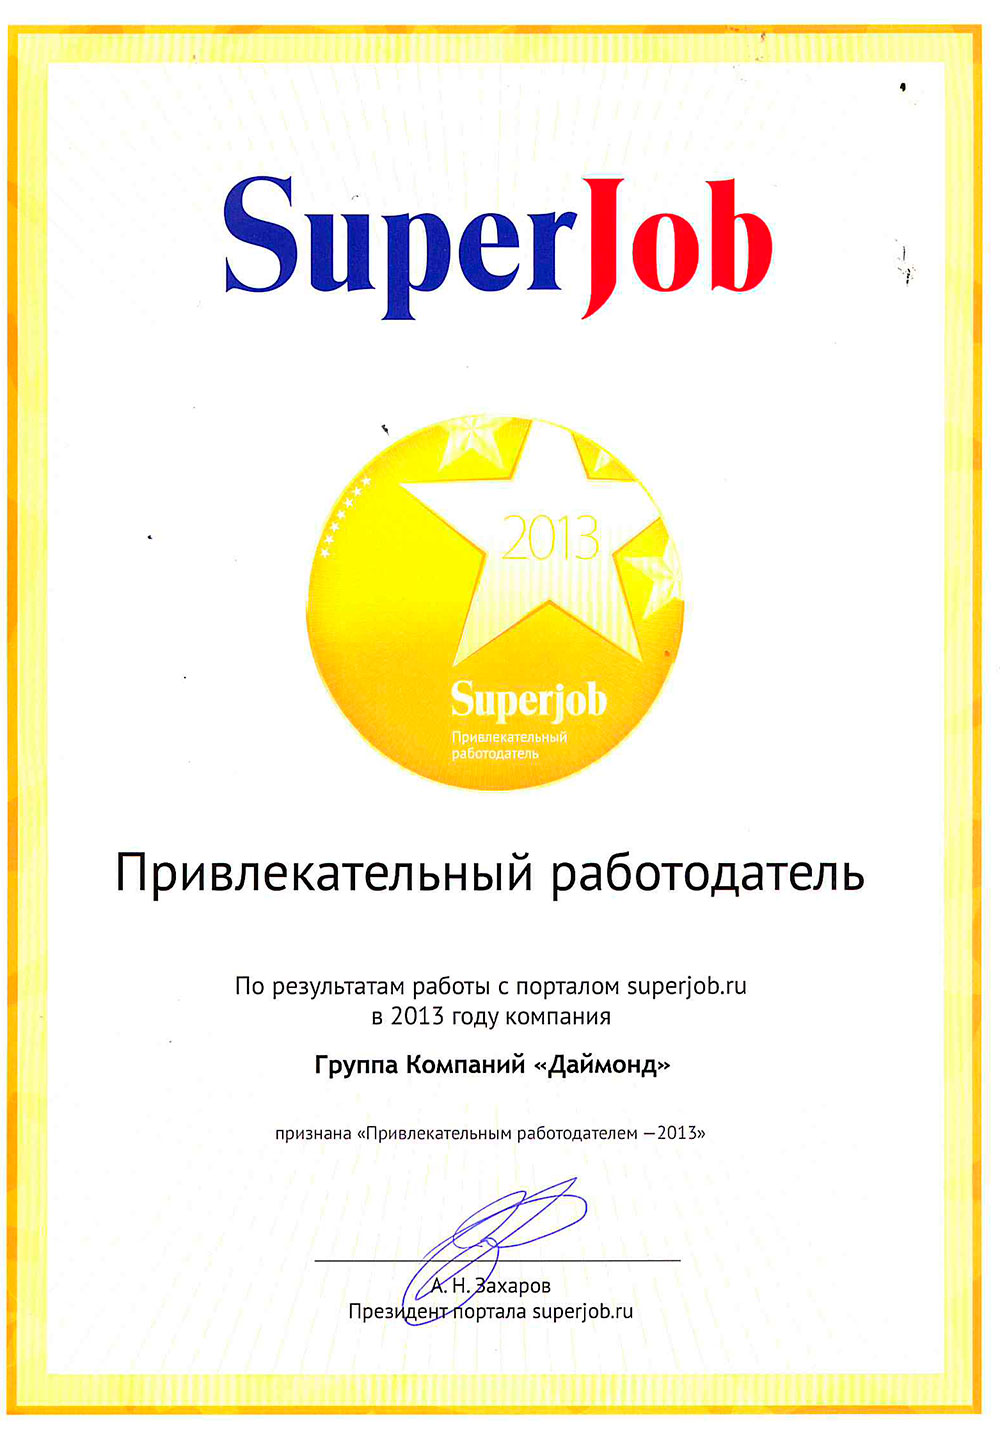 Diamond Holding is the most attractive employer of the year 2013